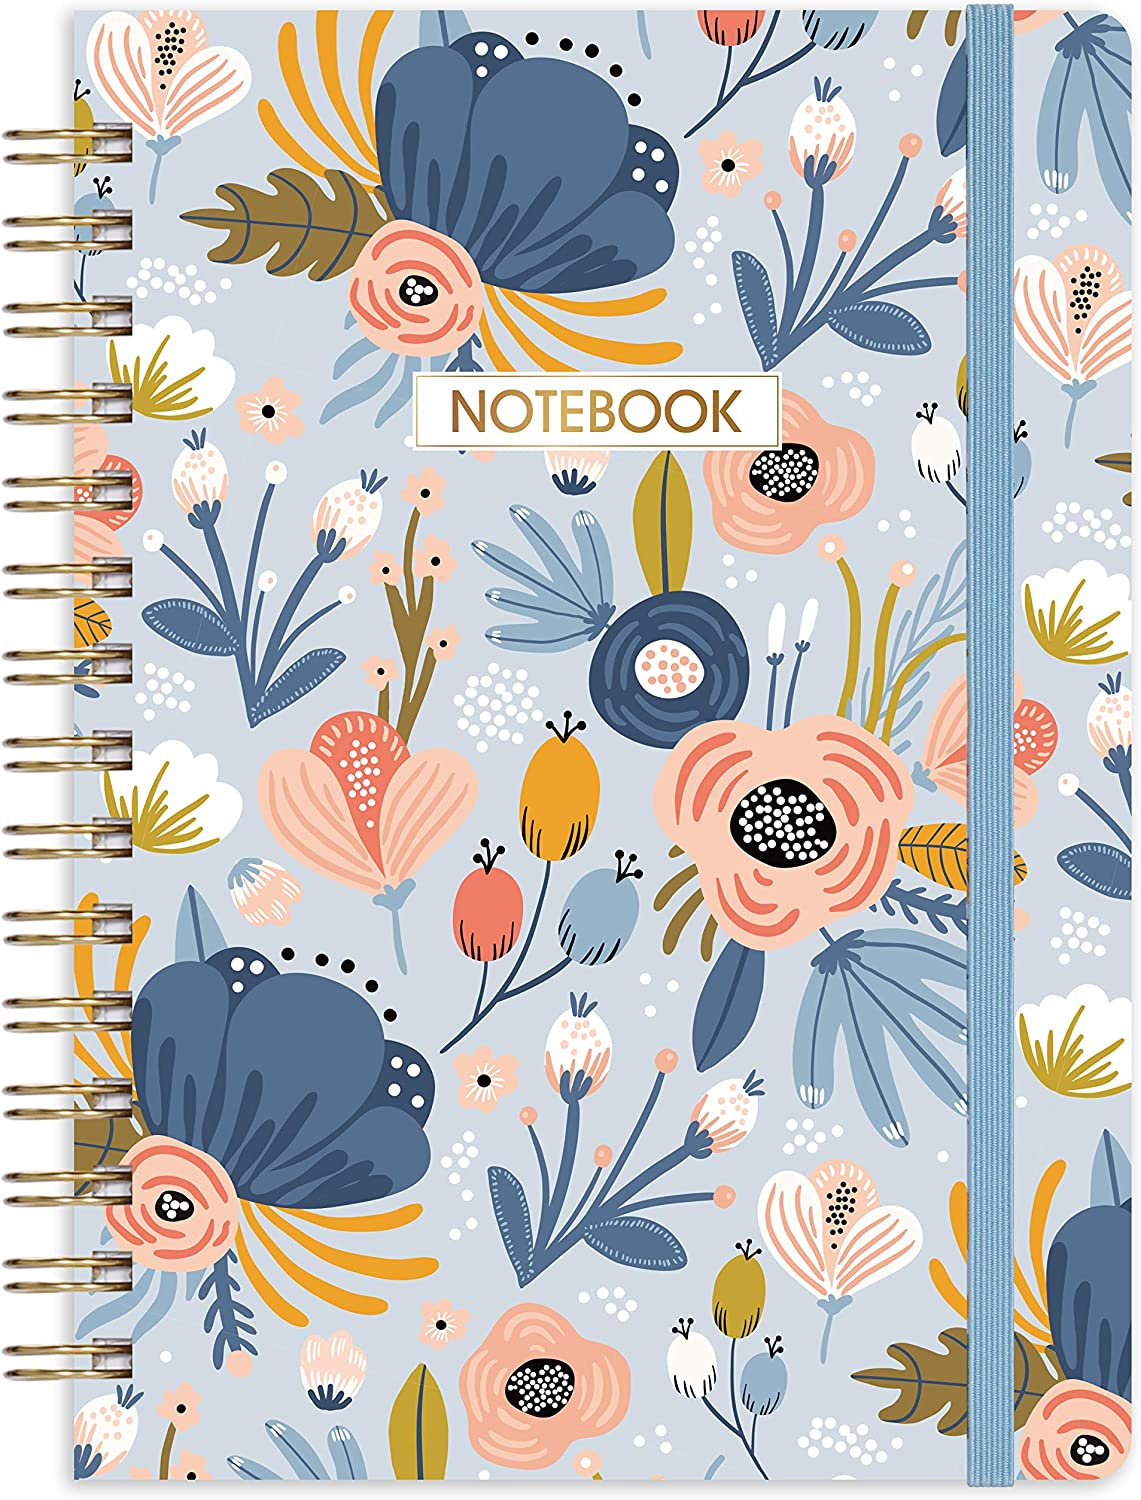 Ruled Notebook//Journal 8.45 X 6.38 Banded with Exquisite Inner Pocket College Ruled Spiral Journal//Notebook Lined Journal with Premium Thick Paper Hardcover